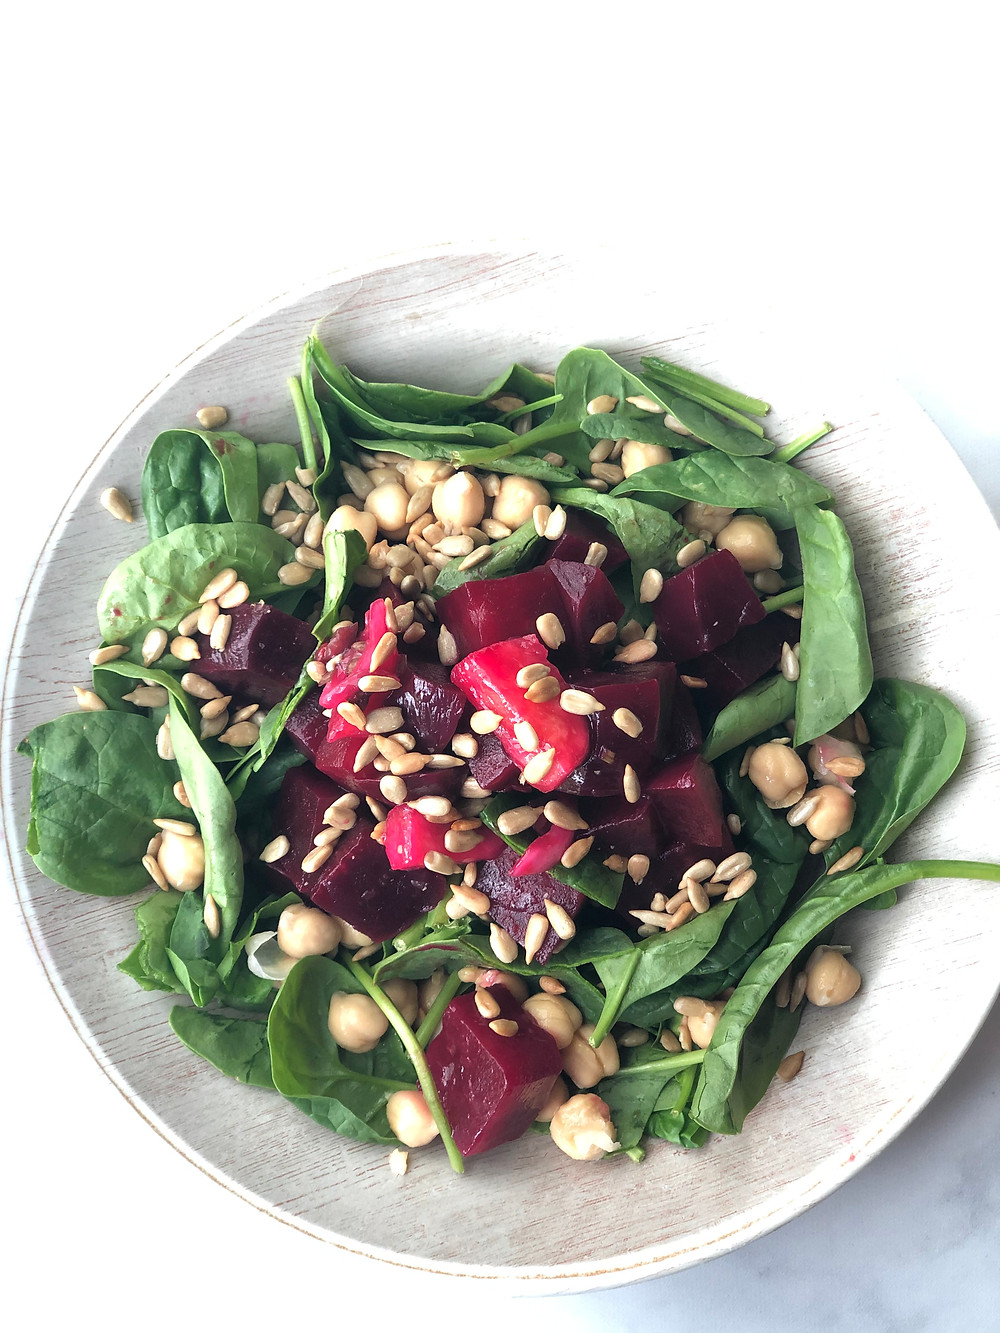 Beet salad with sunflower seeds, spinach and chickpeas